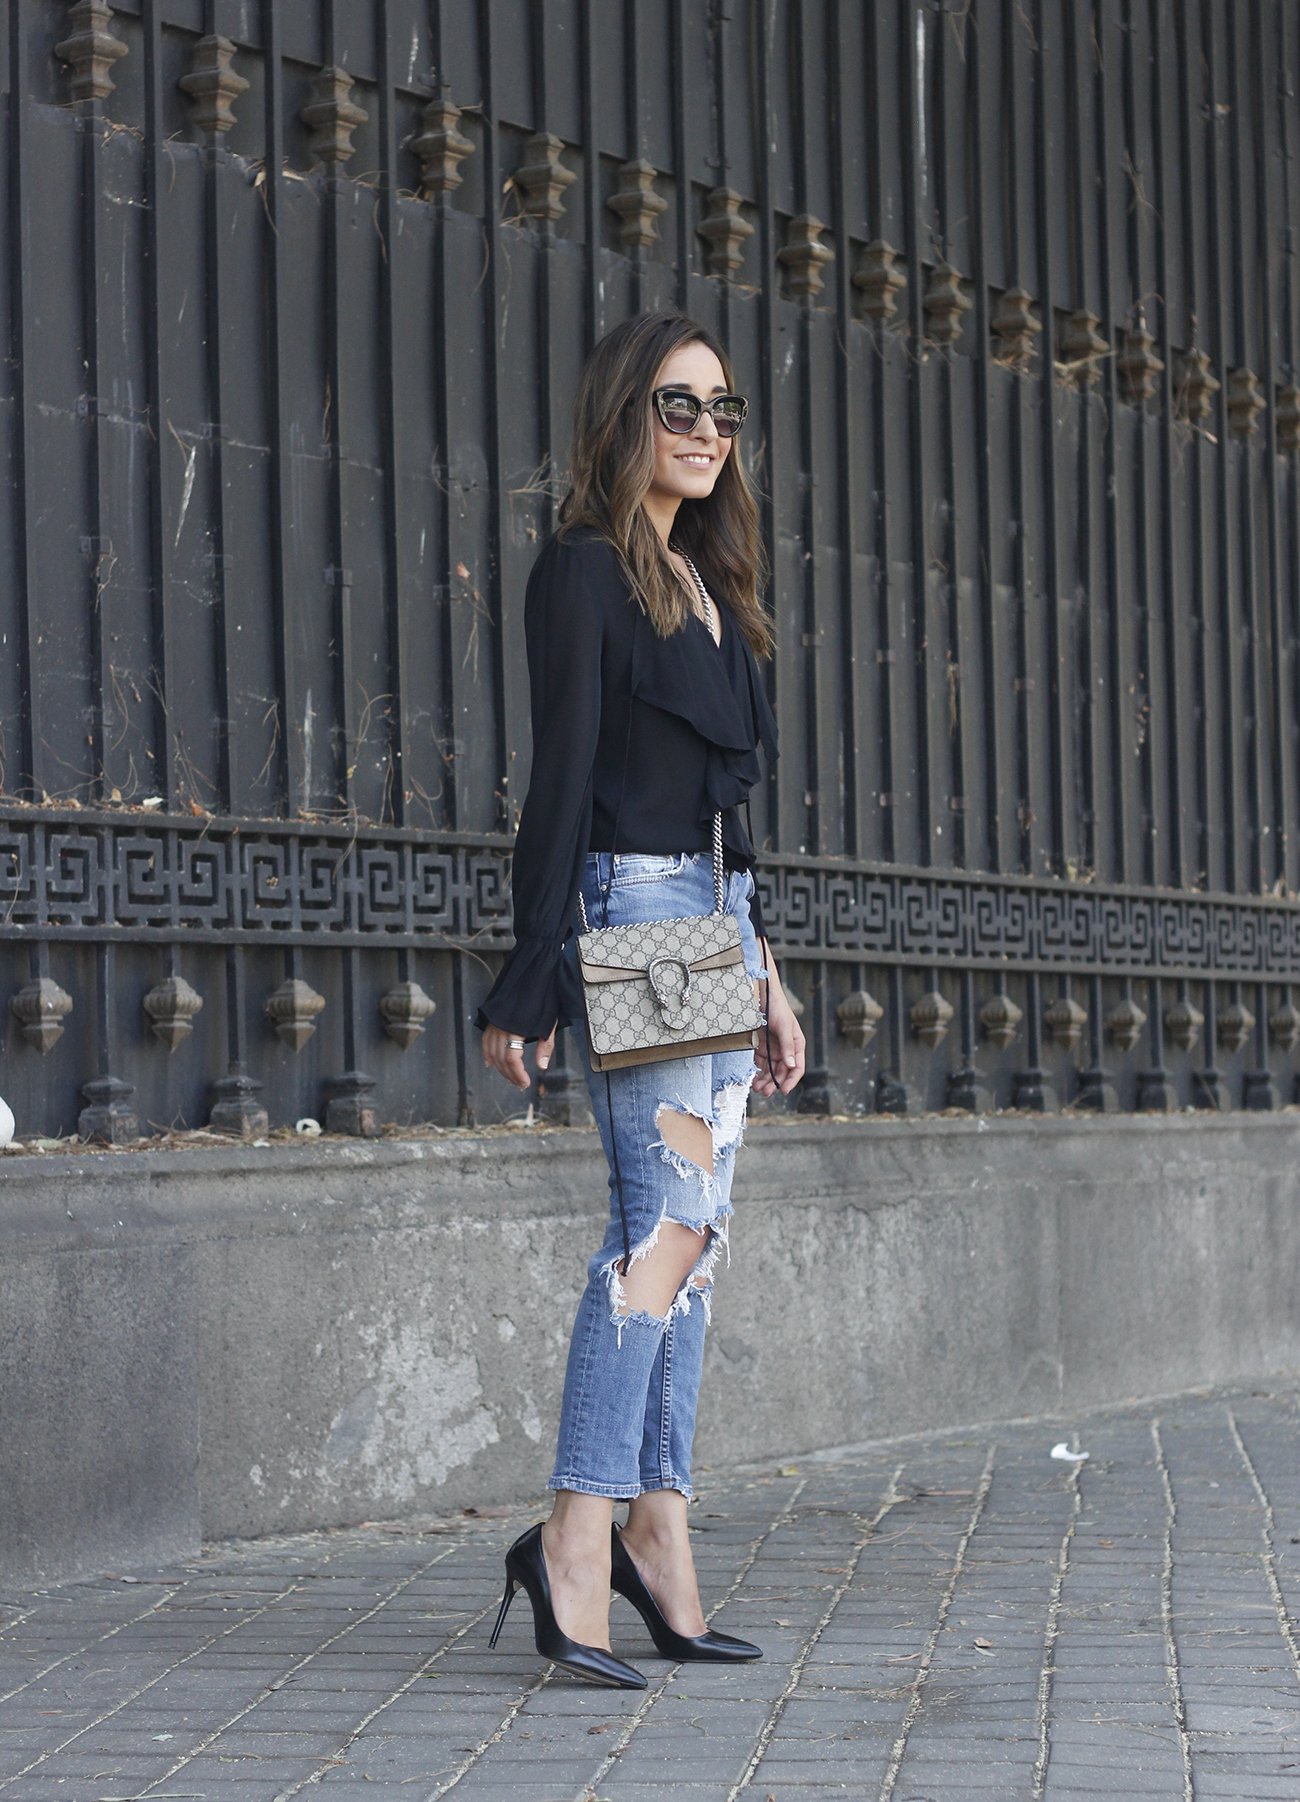 frilled shirt ripped jeans black heels gucci bag summer outfit sunnies03